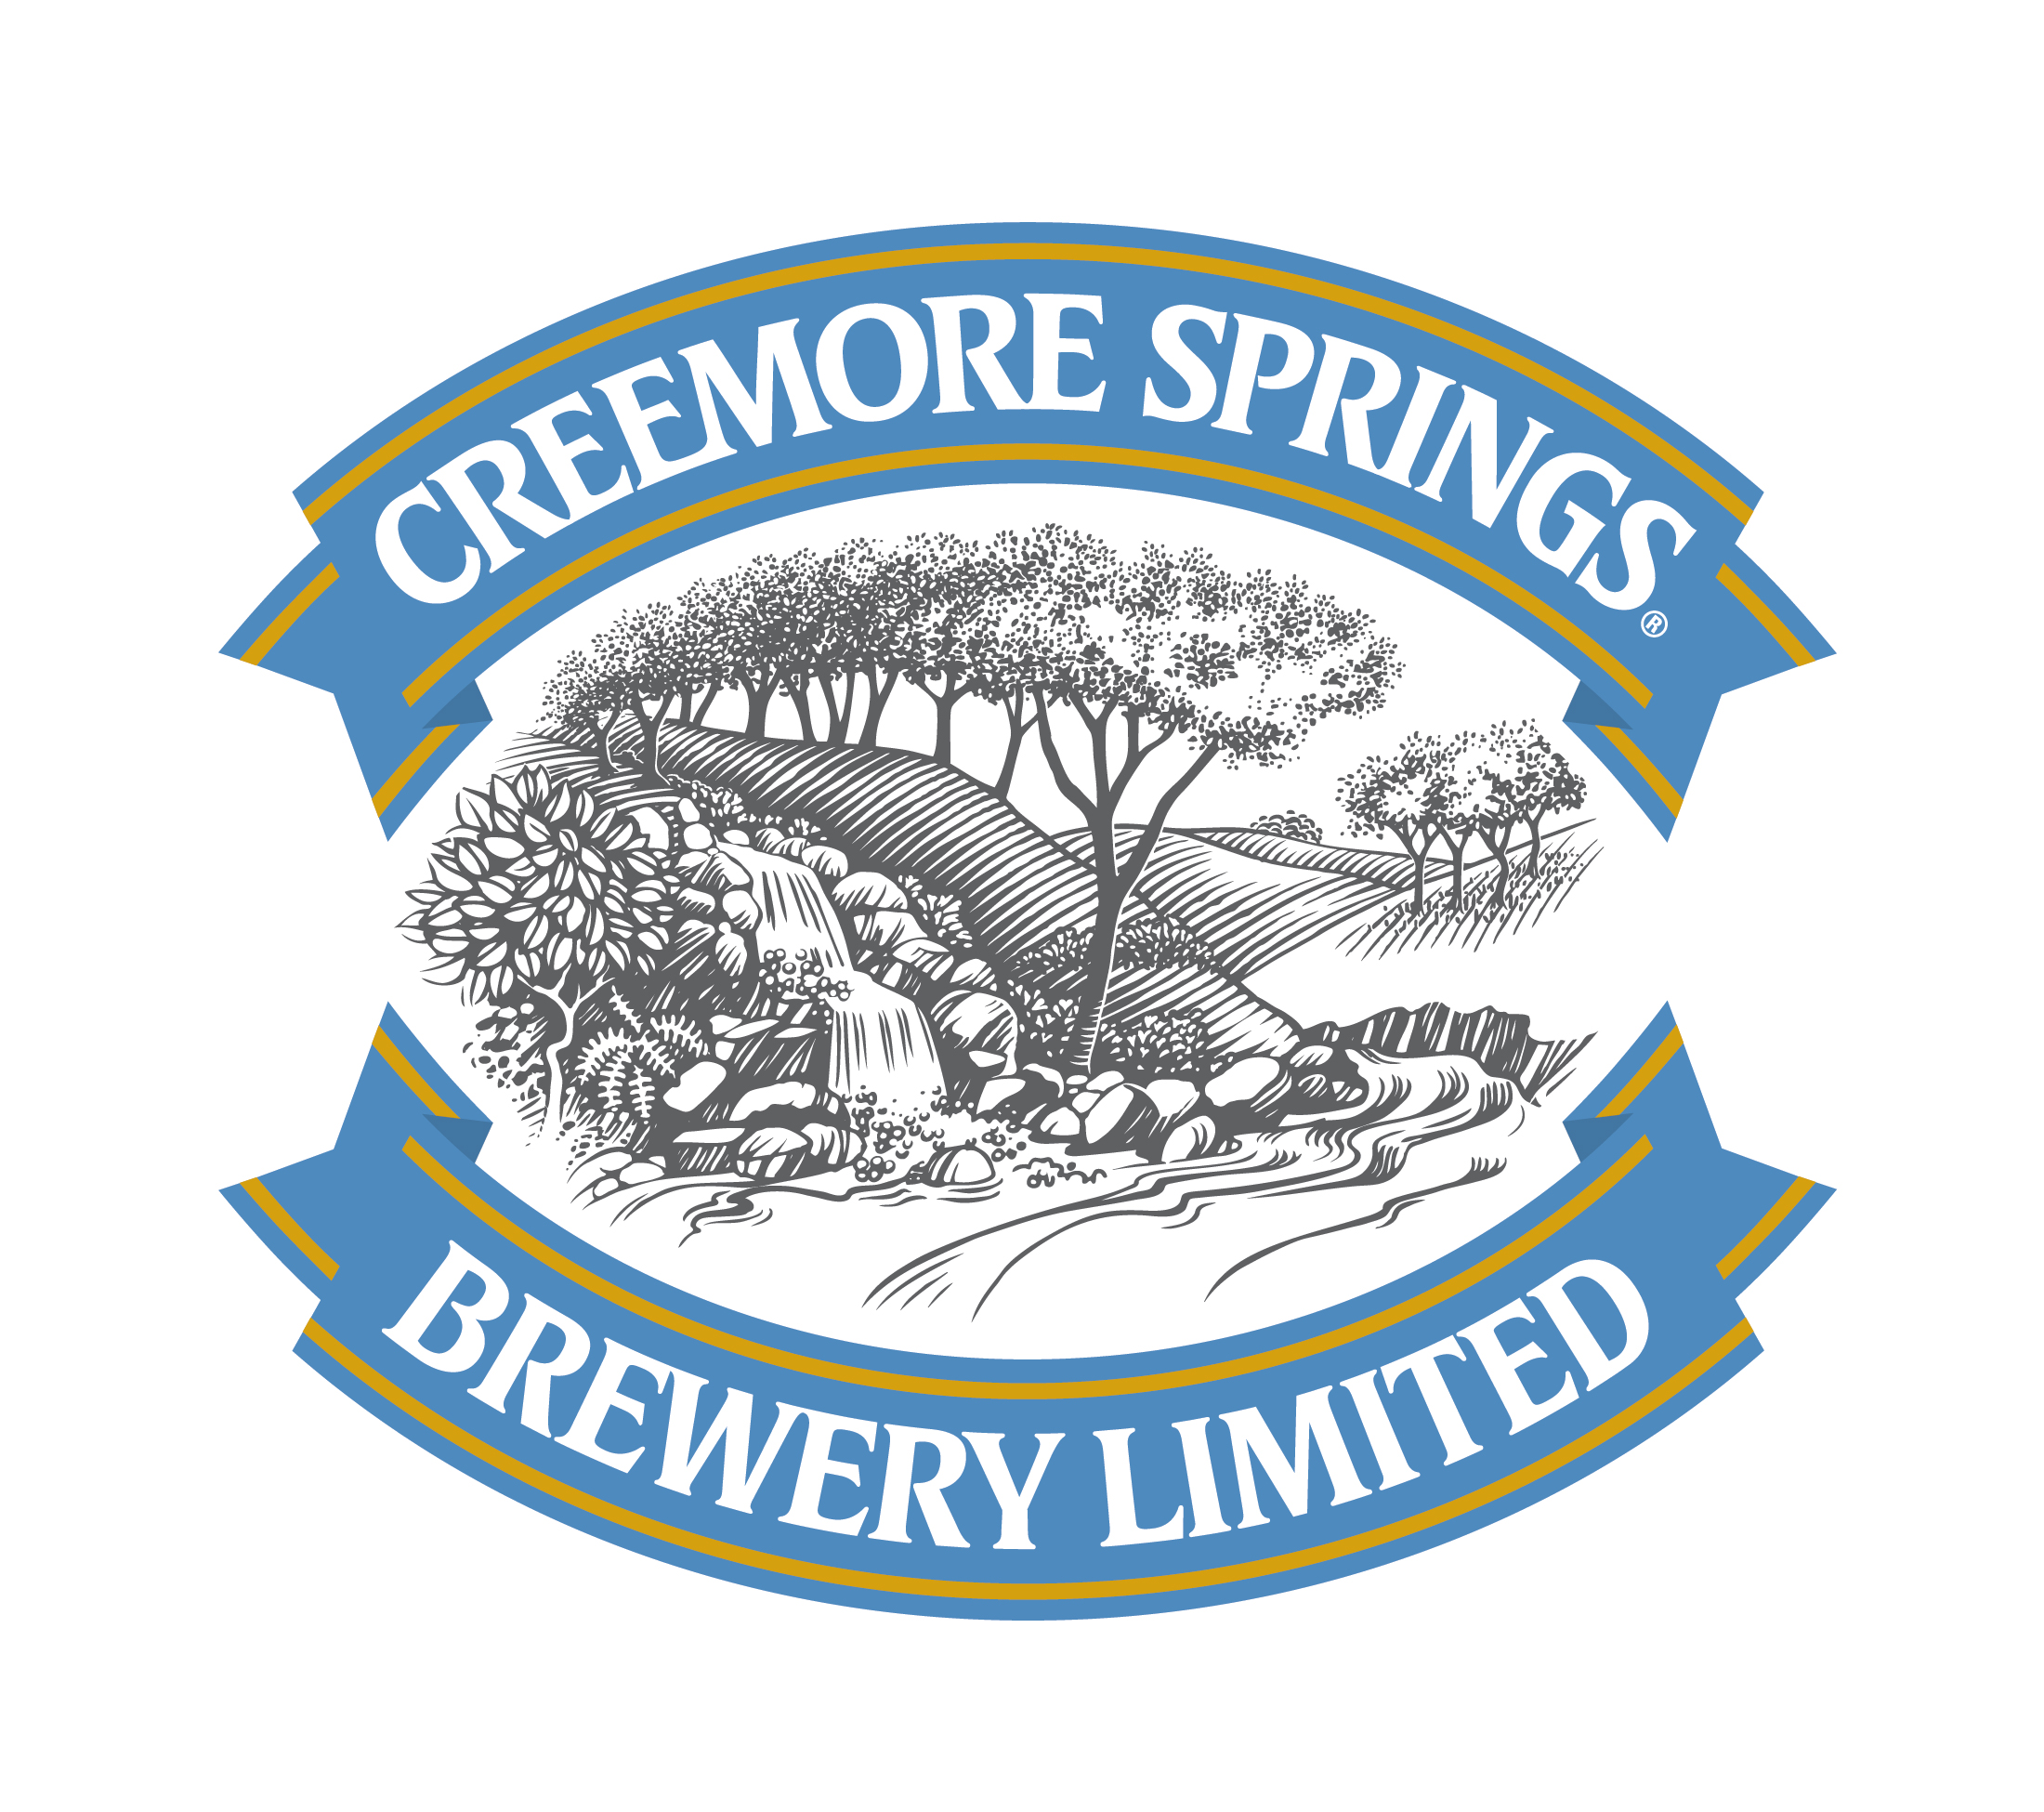 Creemore Springs logo